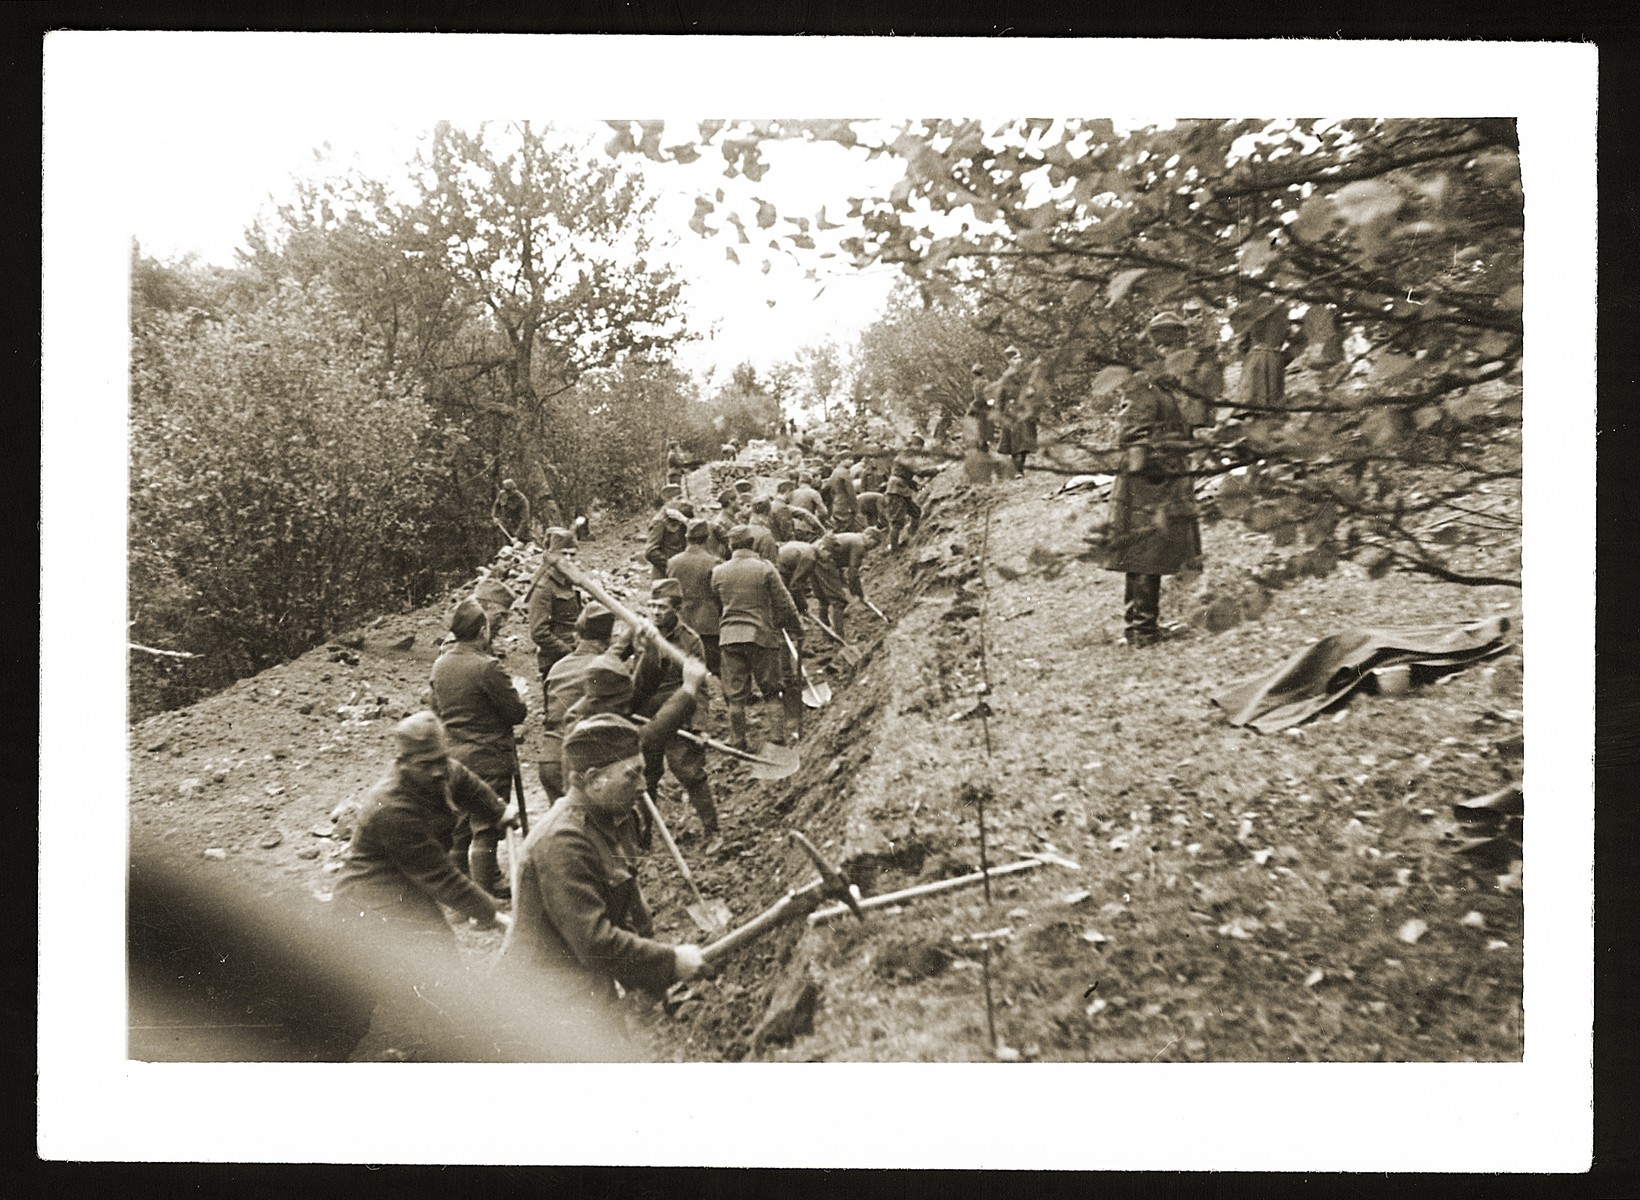 Jewish soldiers in the Slovak army dig a long trench.   The Jewish units were assigned to manual labor and not permitted to carry weapons.